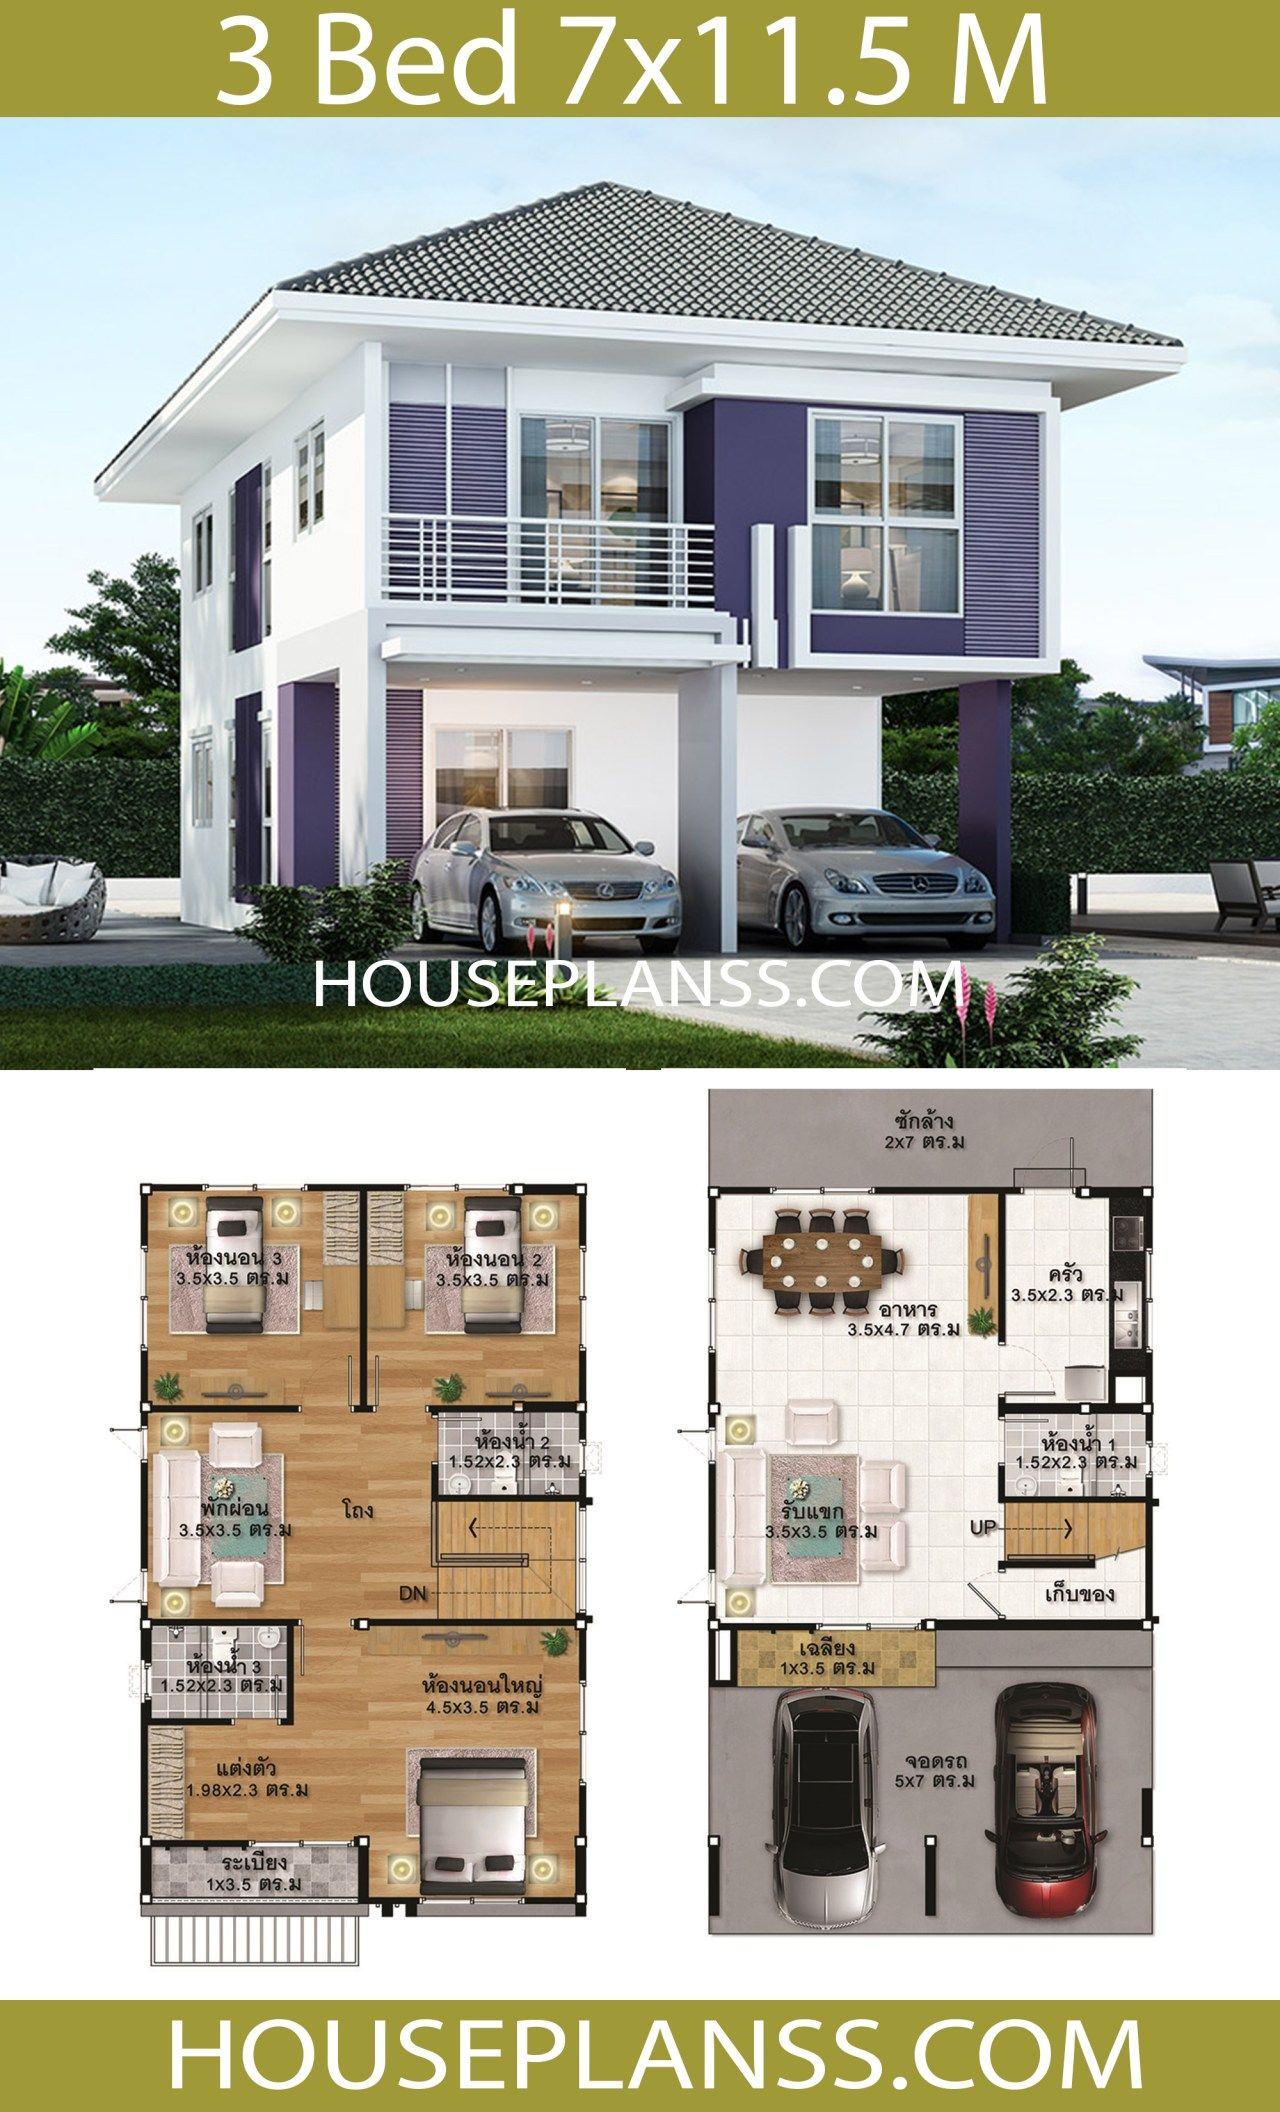 House Design Plans Idea 7x11 5 With 3 Bedrooms Home Ideas In 2020 House Projects Architecture House Construction Plan Architectural House Plans